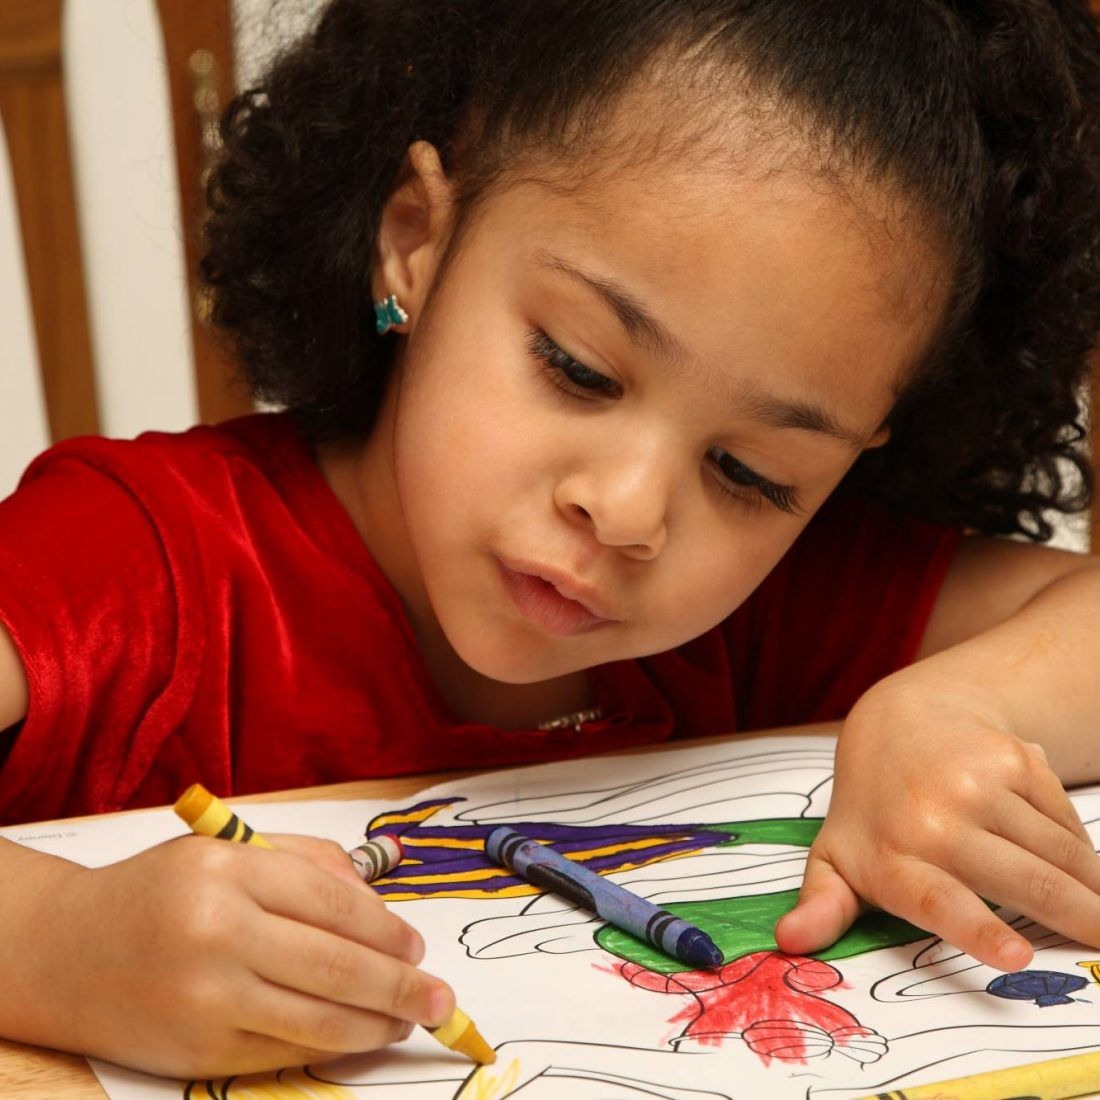 child-coloring-4591205